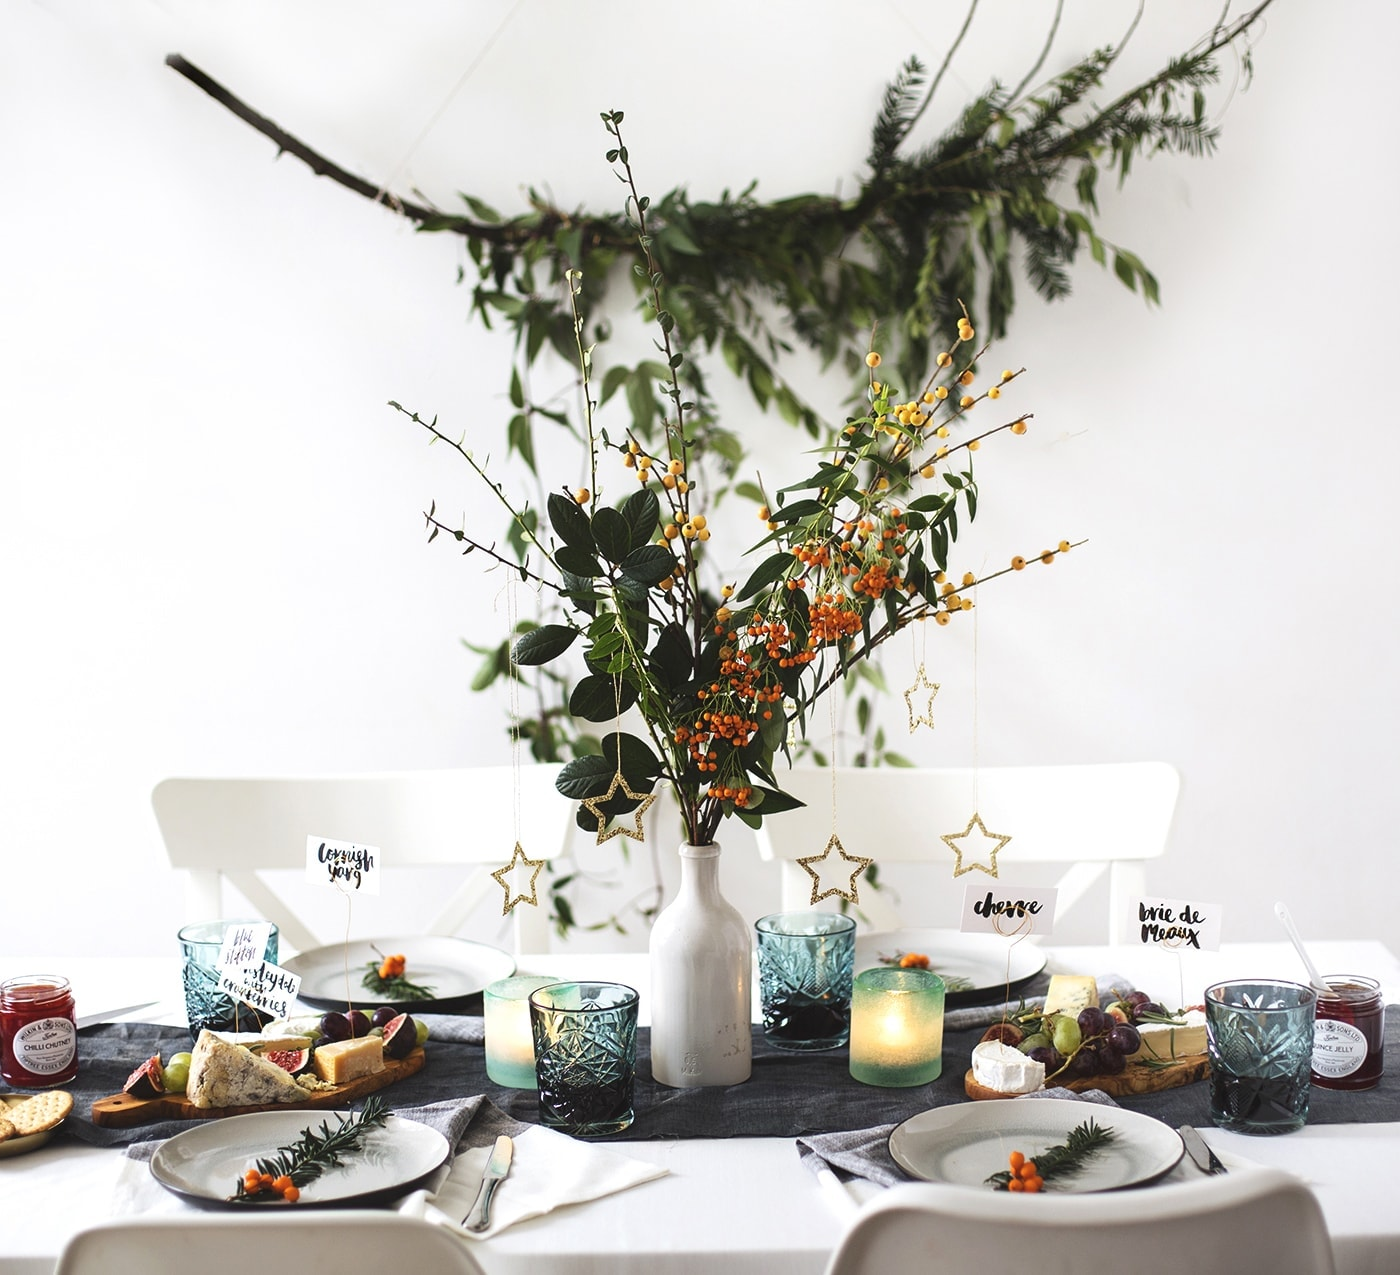 12 styled days of Christmas with West Elm 2